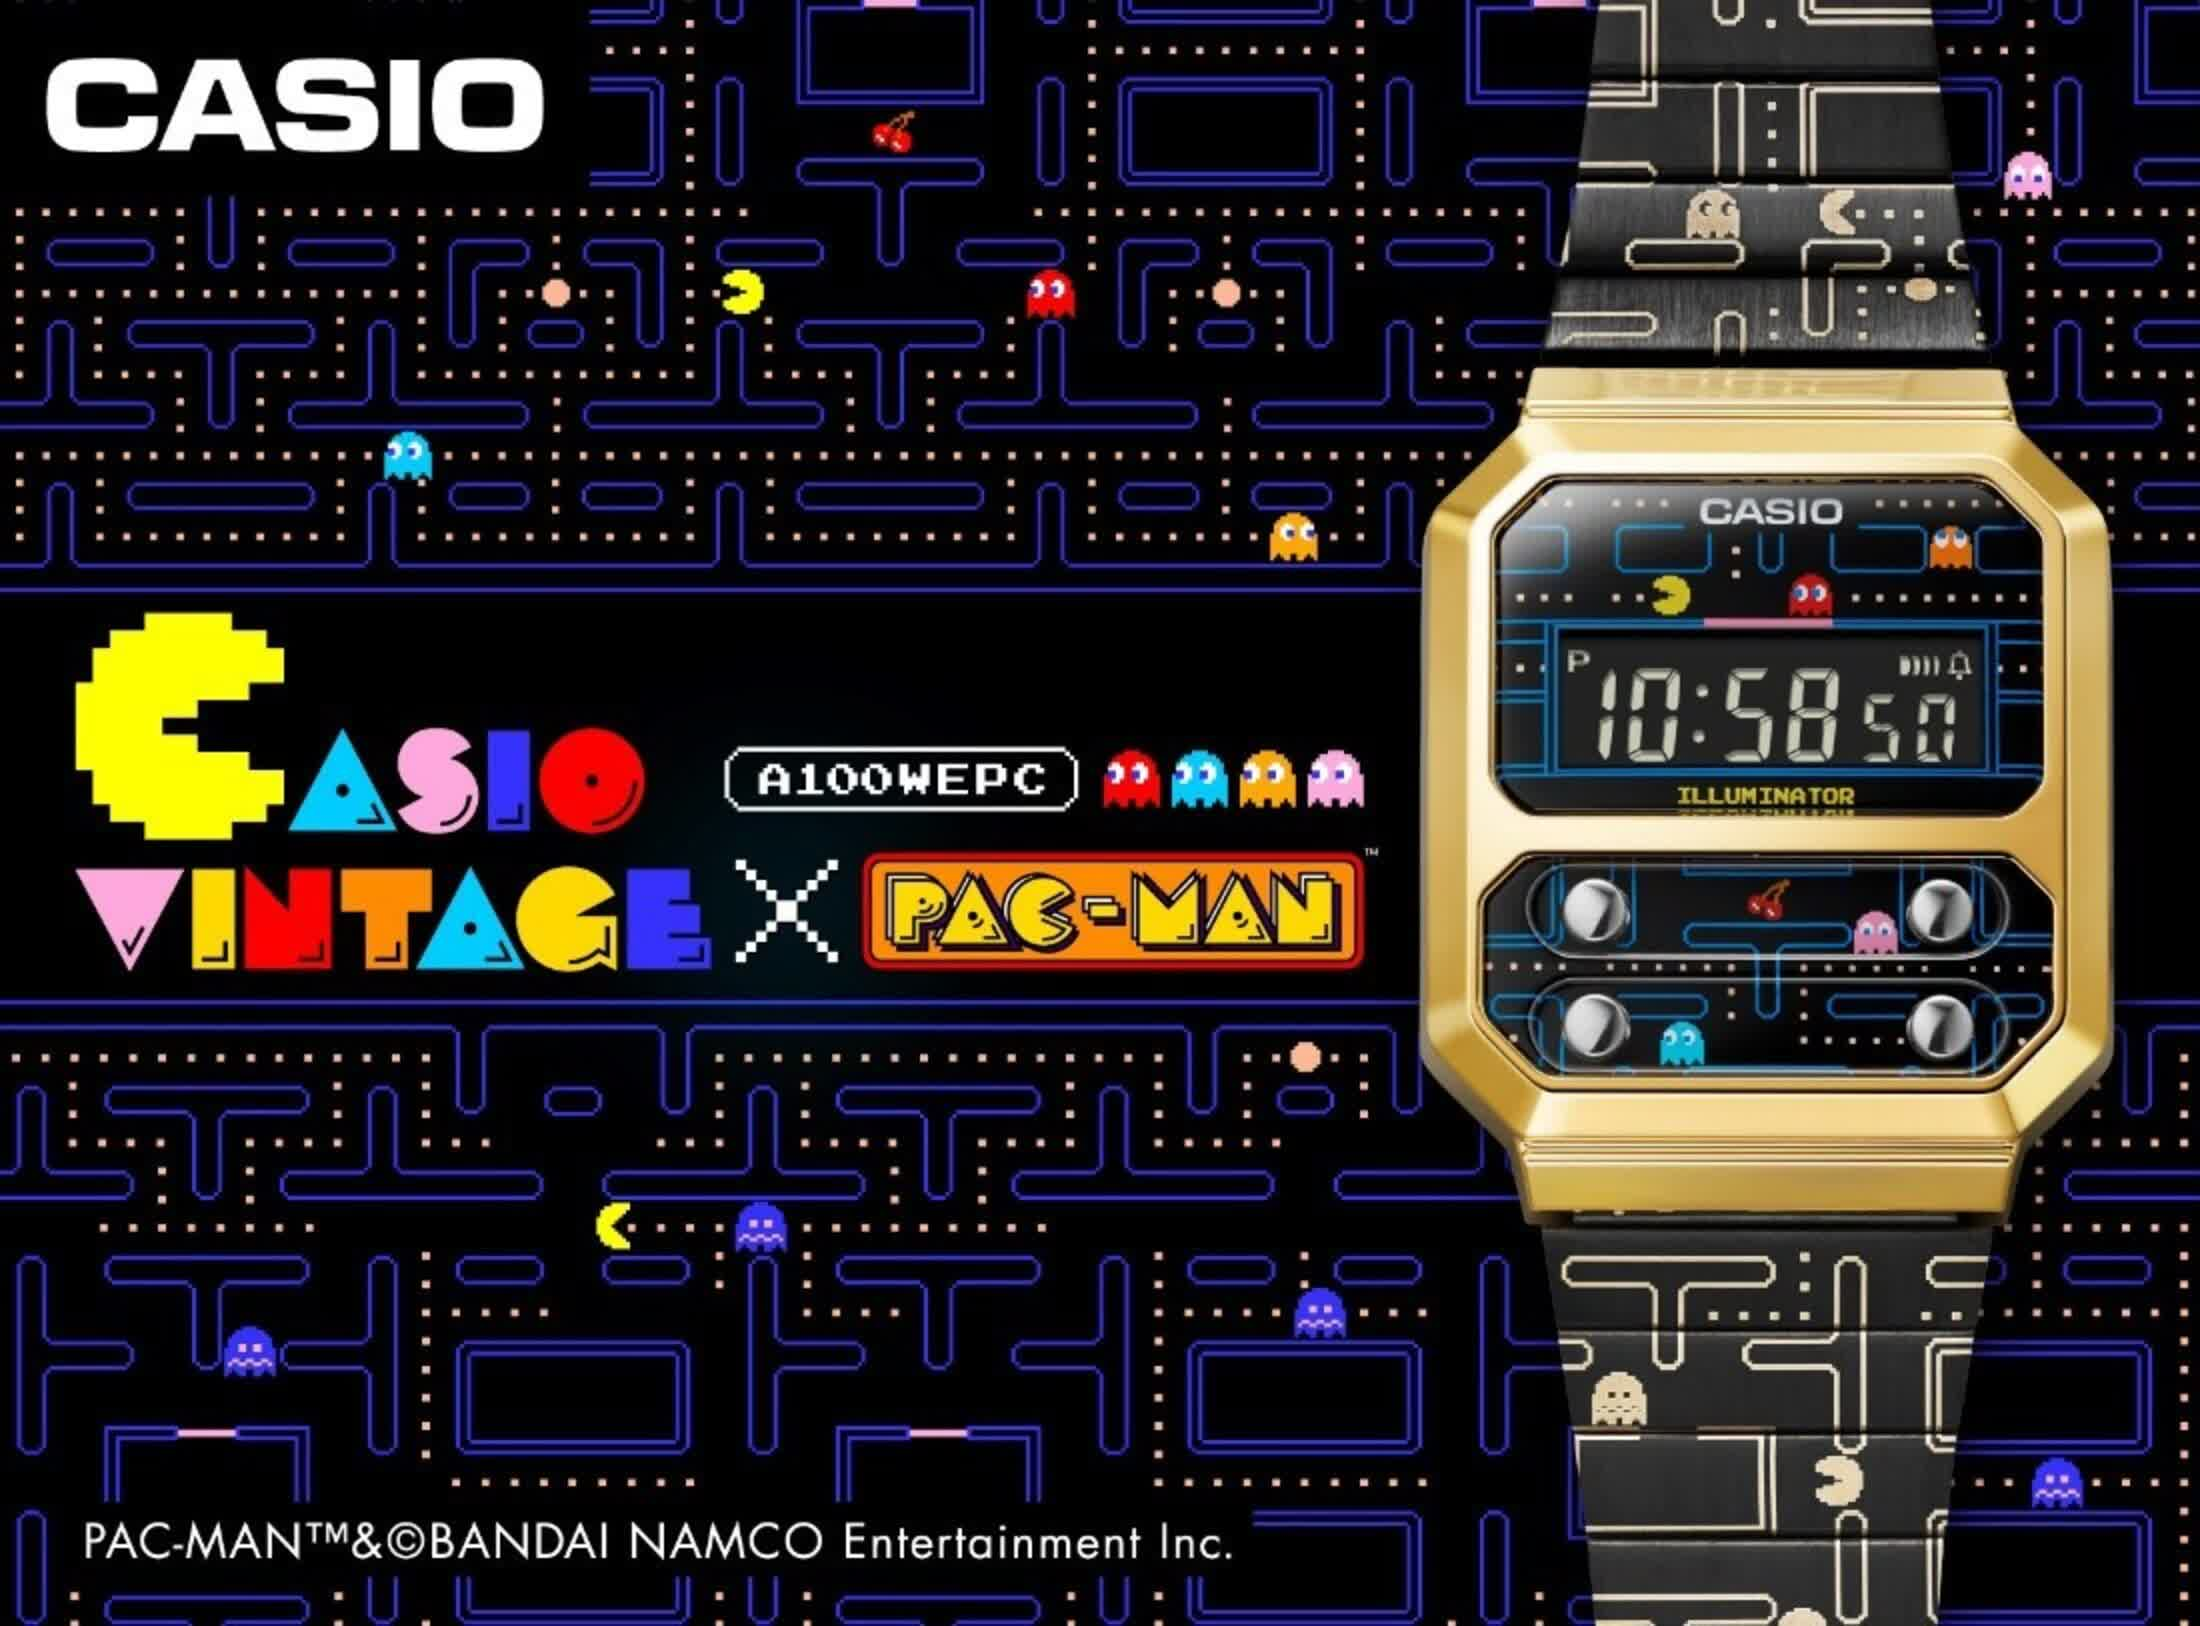 Casio made a Pac-Man watch based on a reissue of a classic timepiece